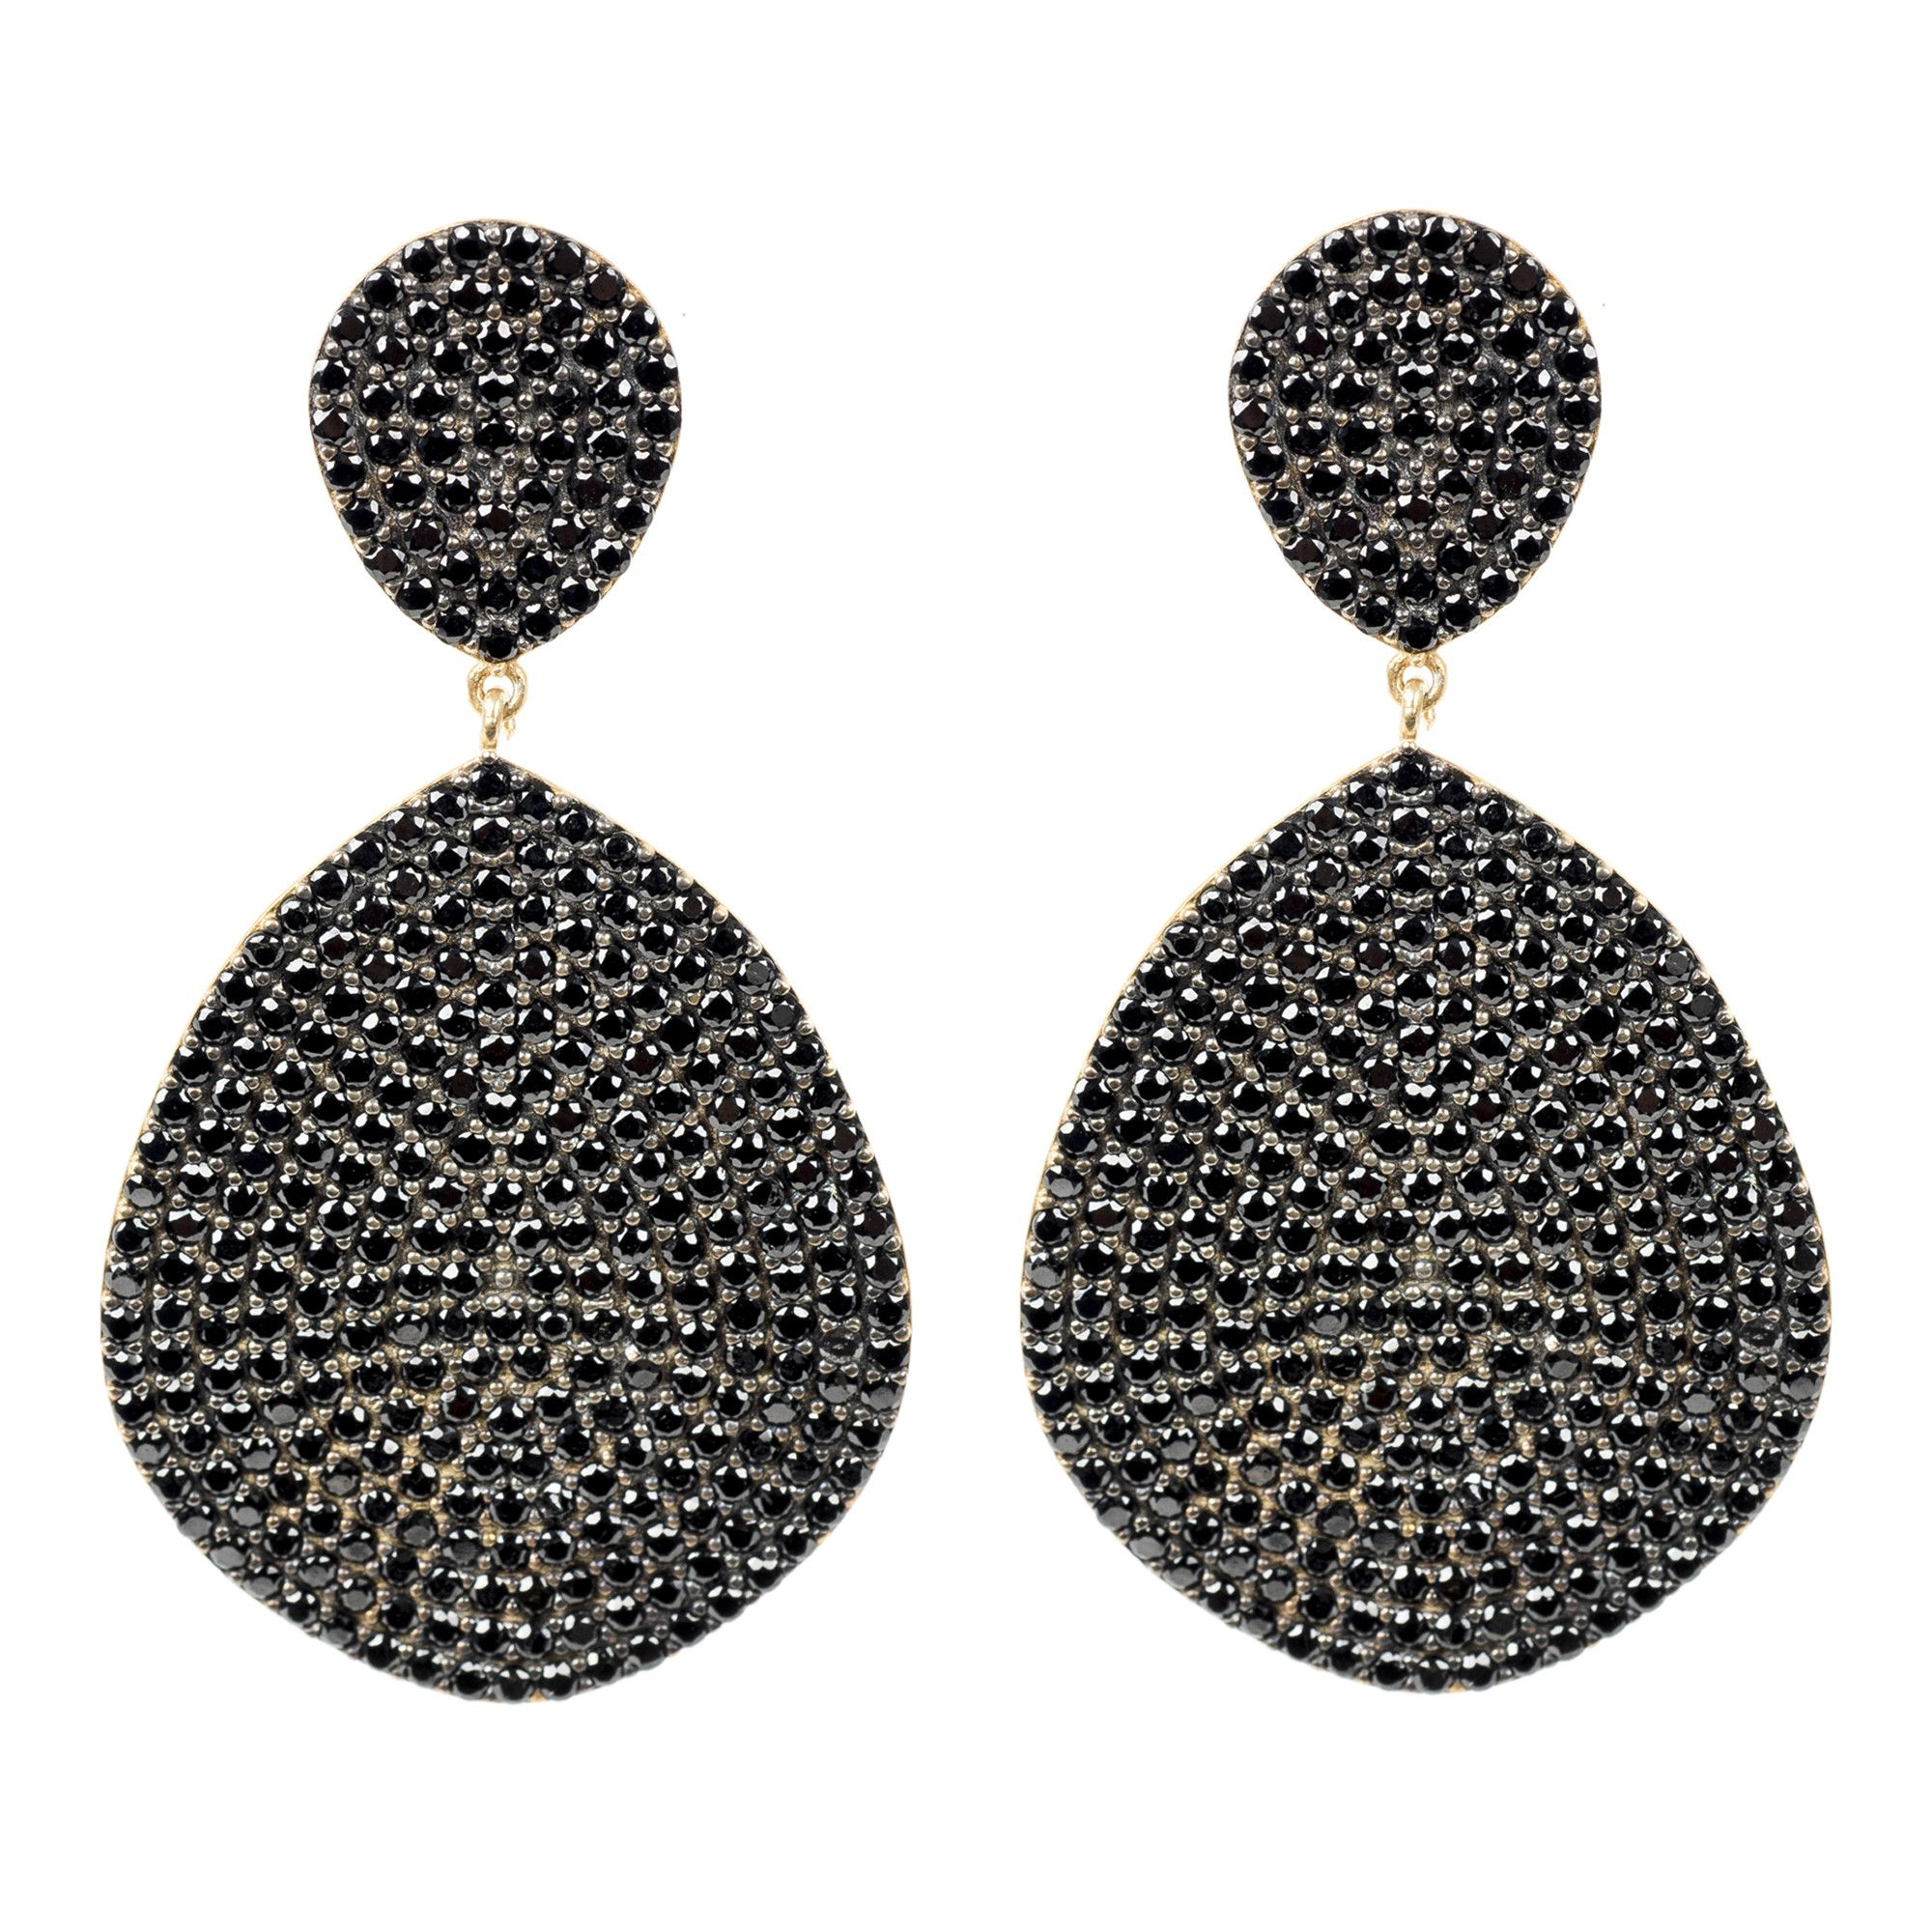 Latelita London Monaco Earring Black Spinel 4rPjtF9D